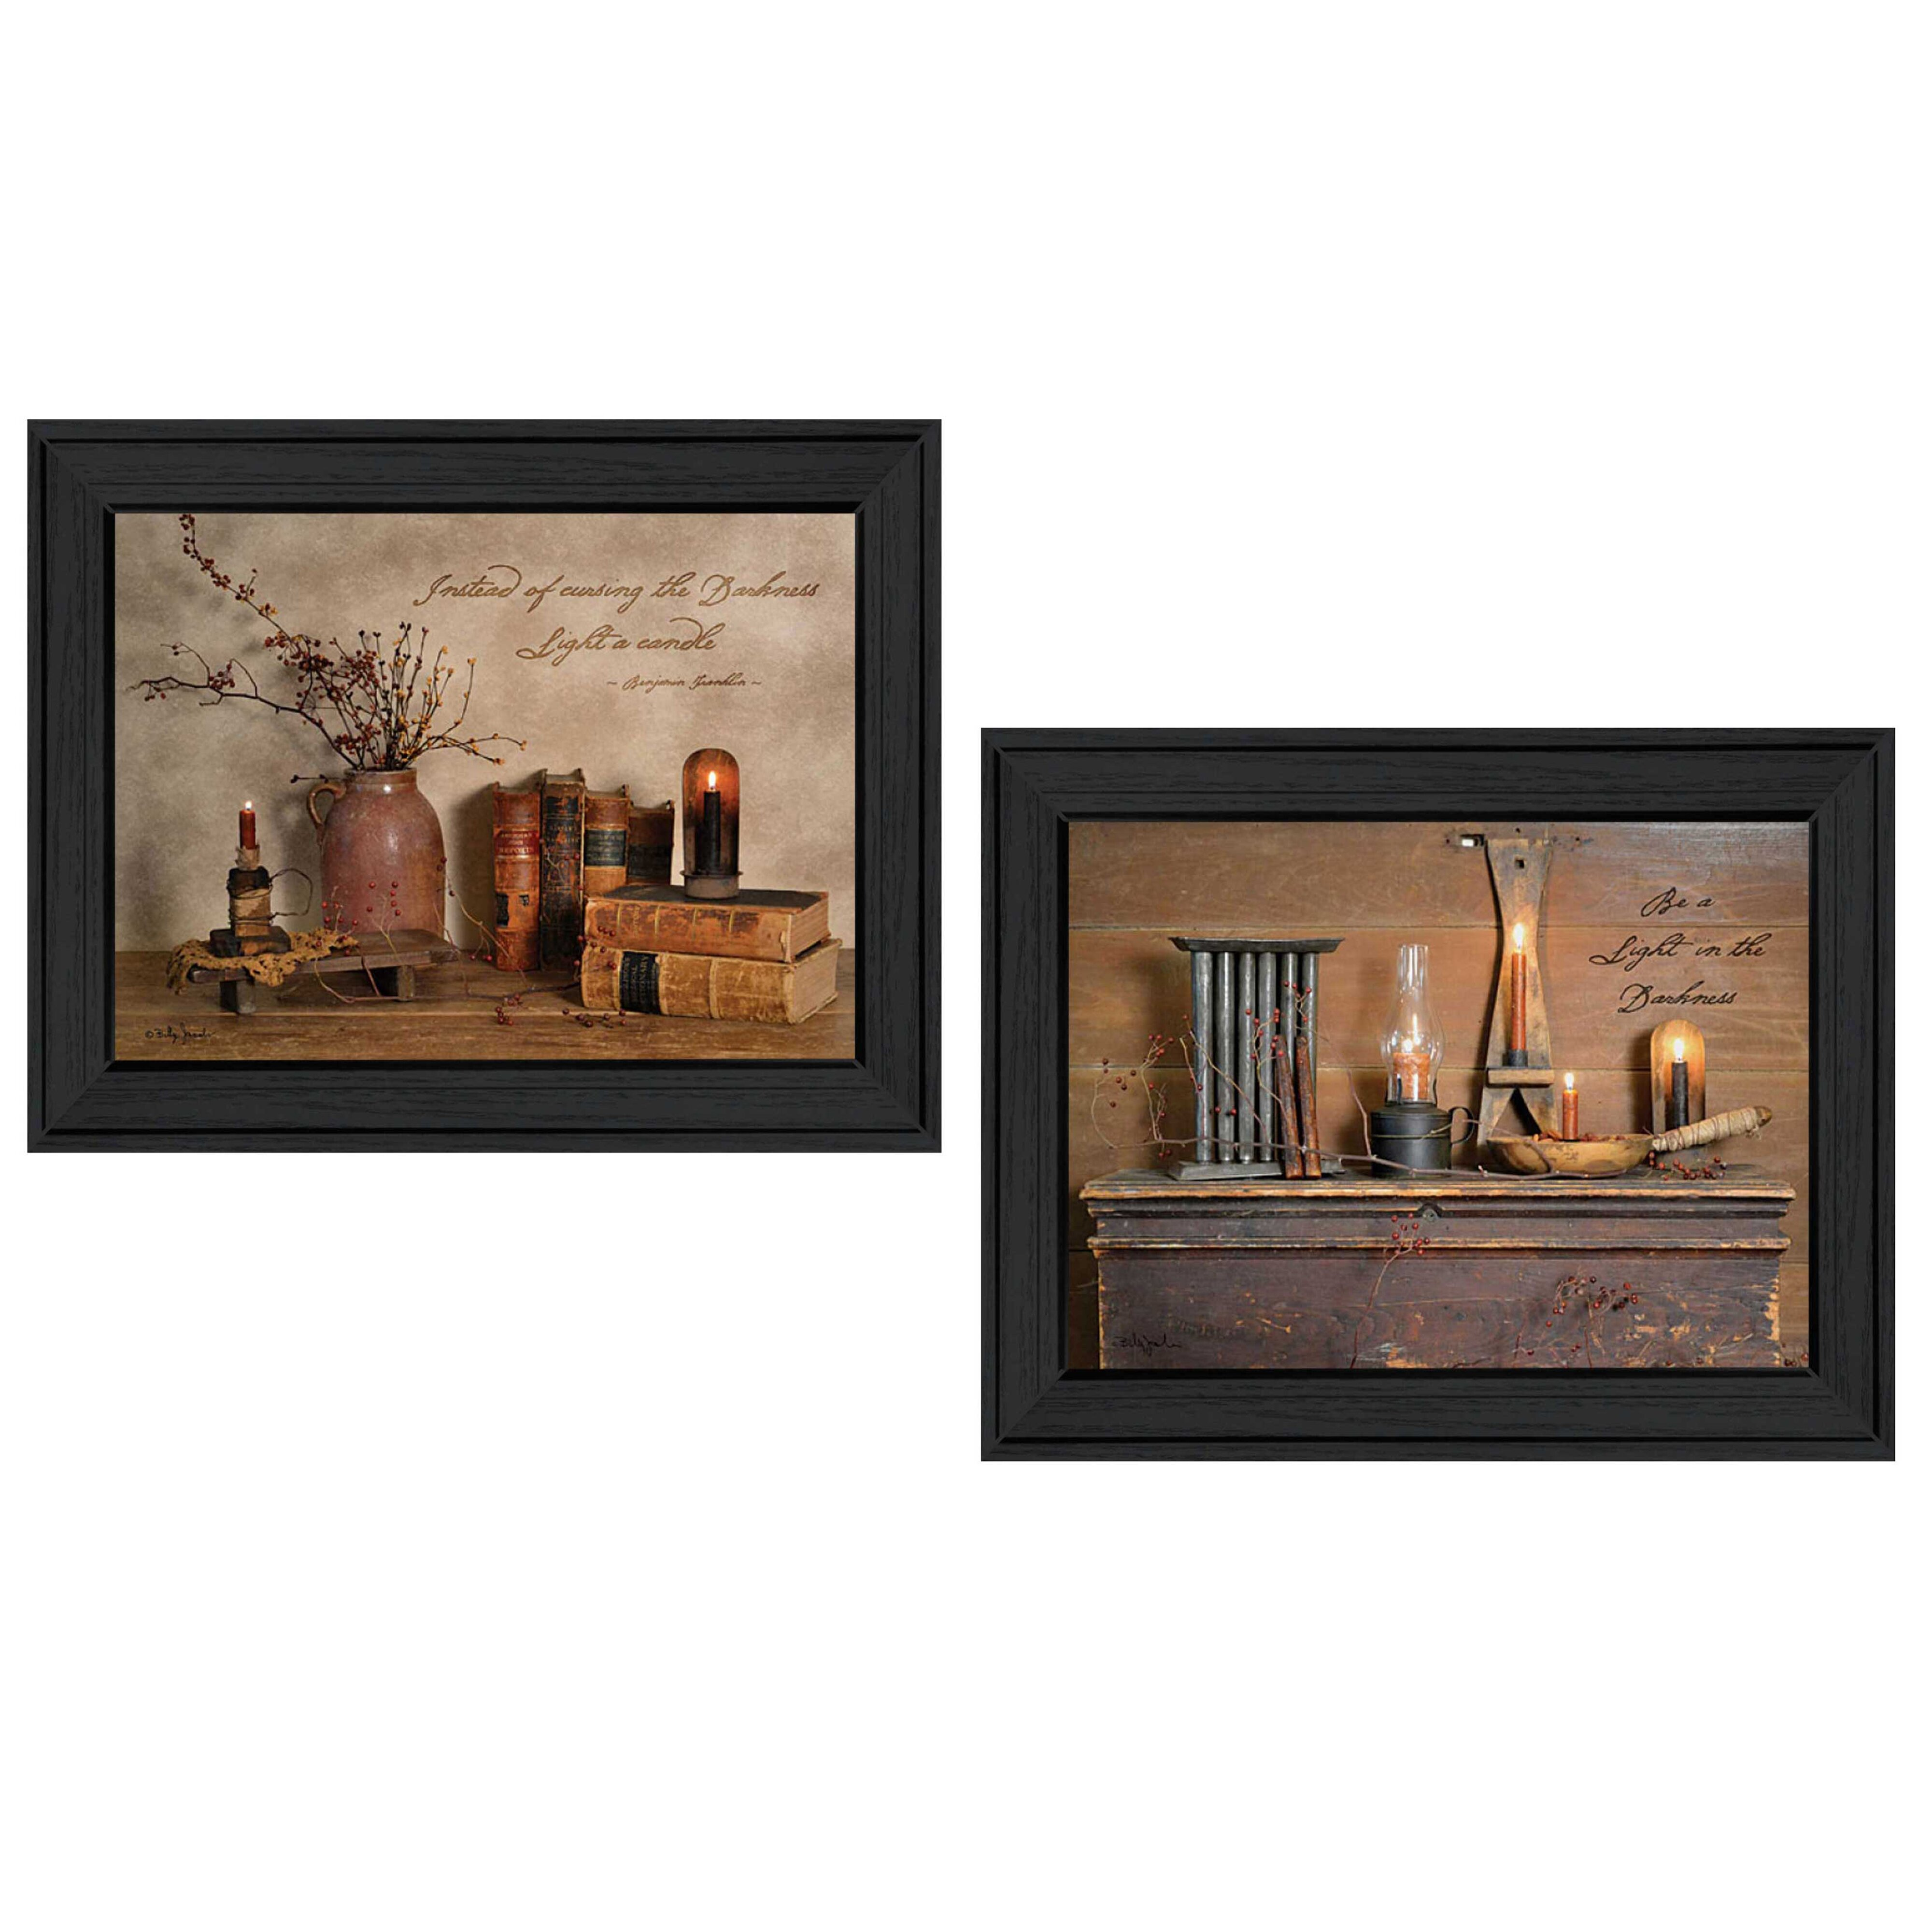 Trendy decor 4u 39 candles 39 by billy jacobs 2 piece framed for Home decor 4 u